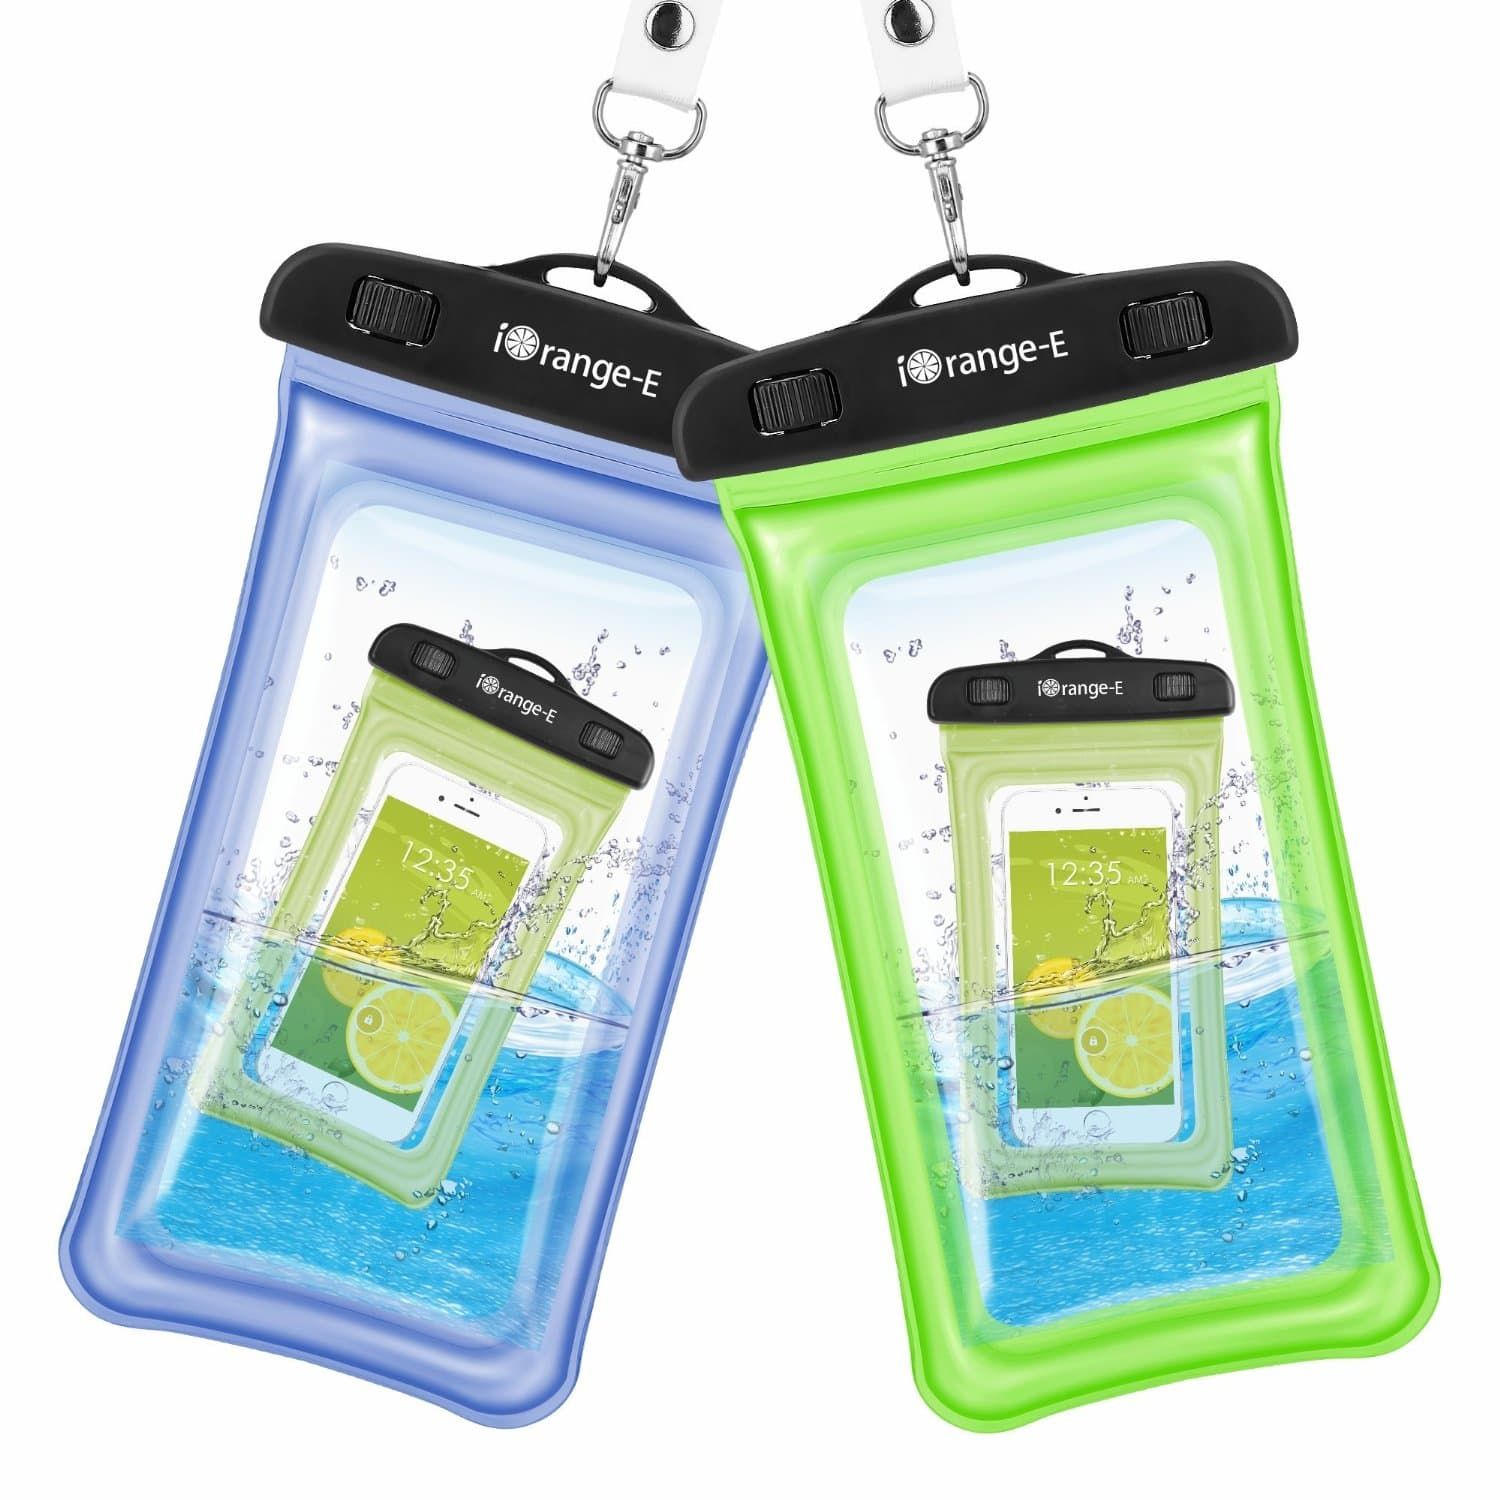 $7.99 for 2 Pack iOrange-E Clear Universal Waterproof Cellphone Case, FS w/Prime After Coupon